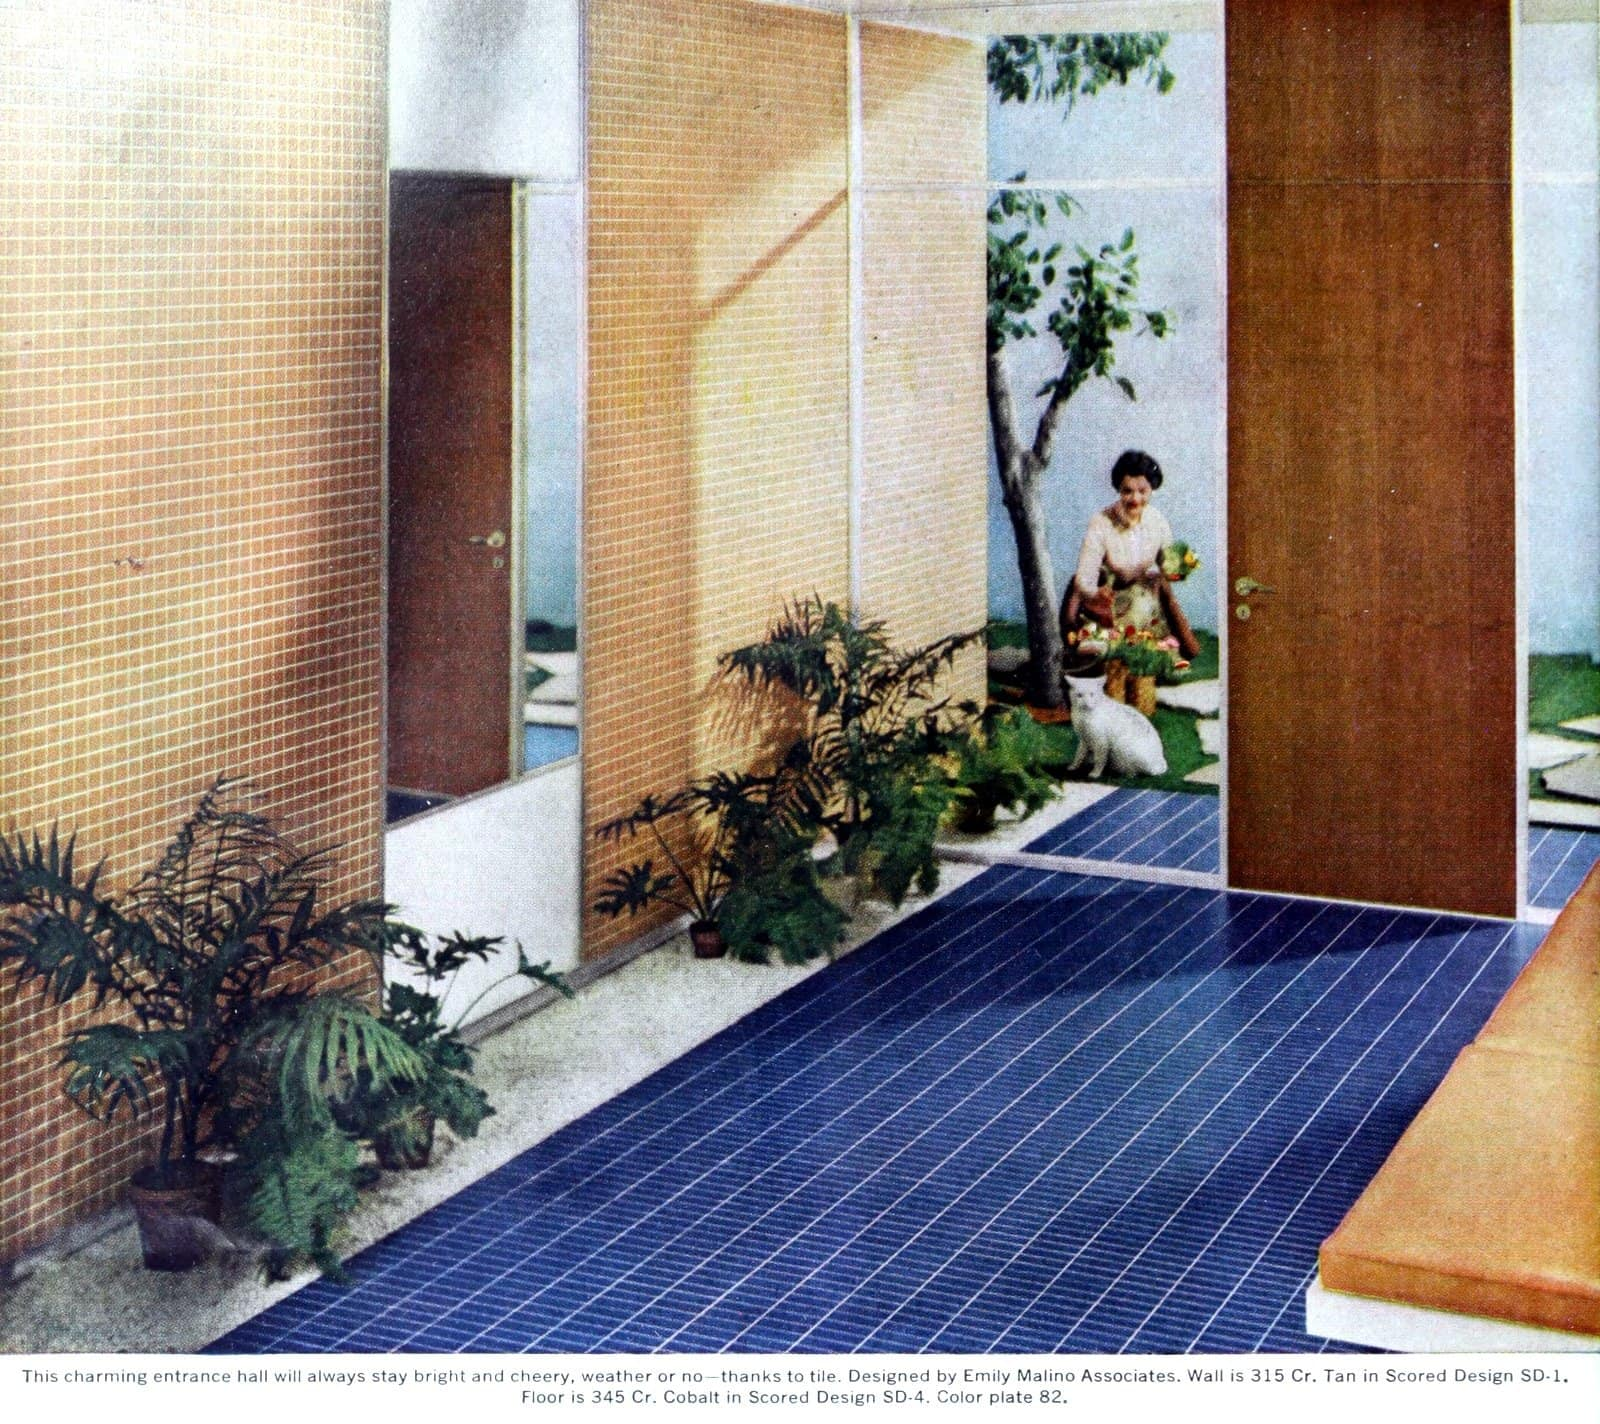 Tiled mid-century entrance hall with royal blue flooring